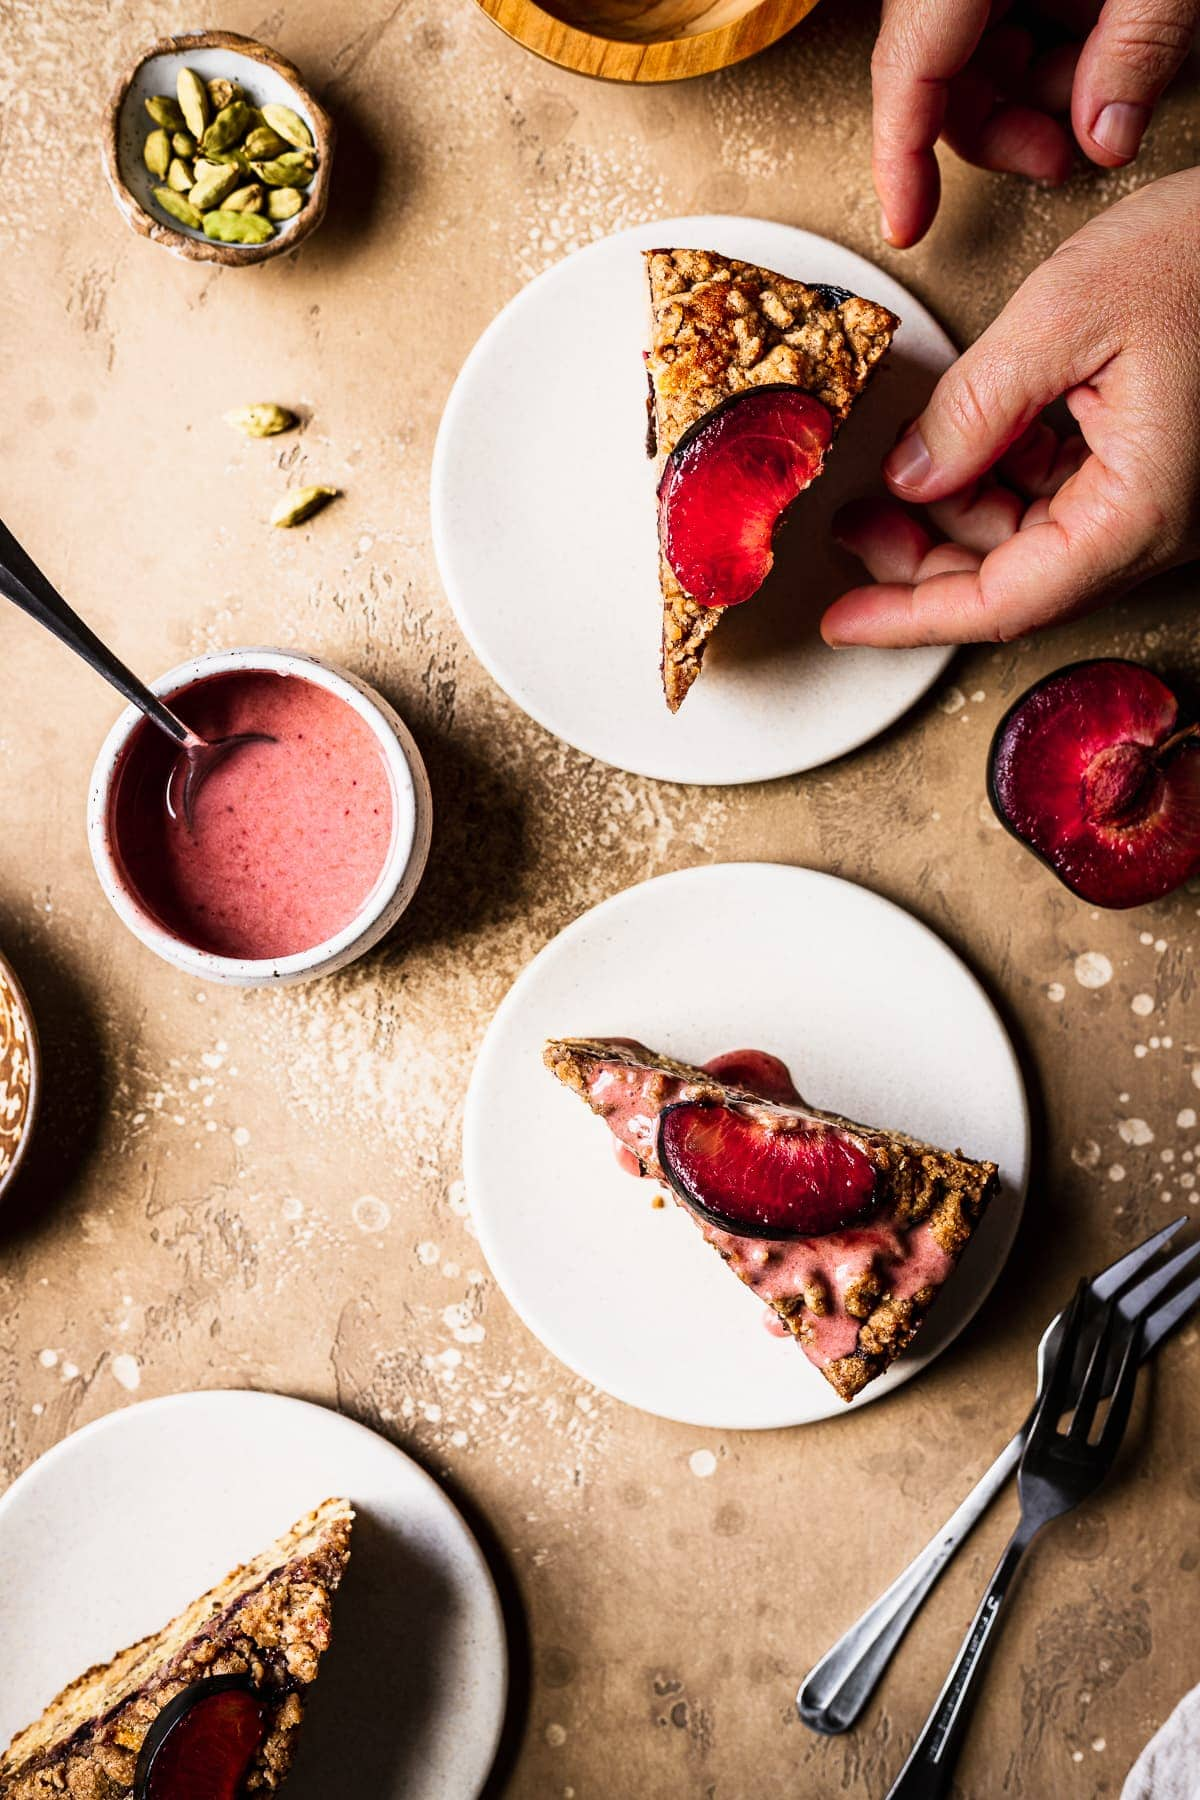 Hands reach into the frame towards slices of cake on light colored ceramic plates topped with plum slices. The background is a warm tan color. Surrounding the cake slices are forks, sliced plum halves, a bowl of pink glaze, and a small bowl of green cardamom pods.